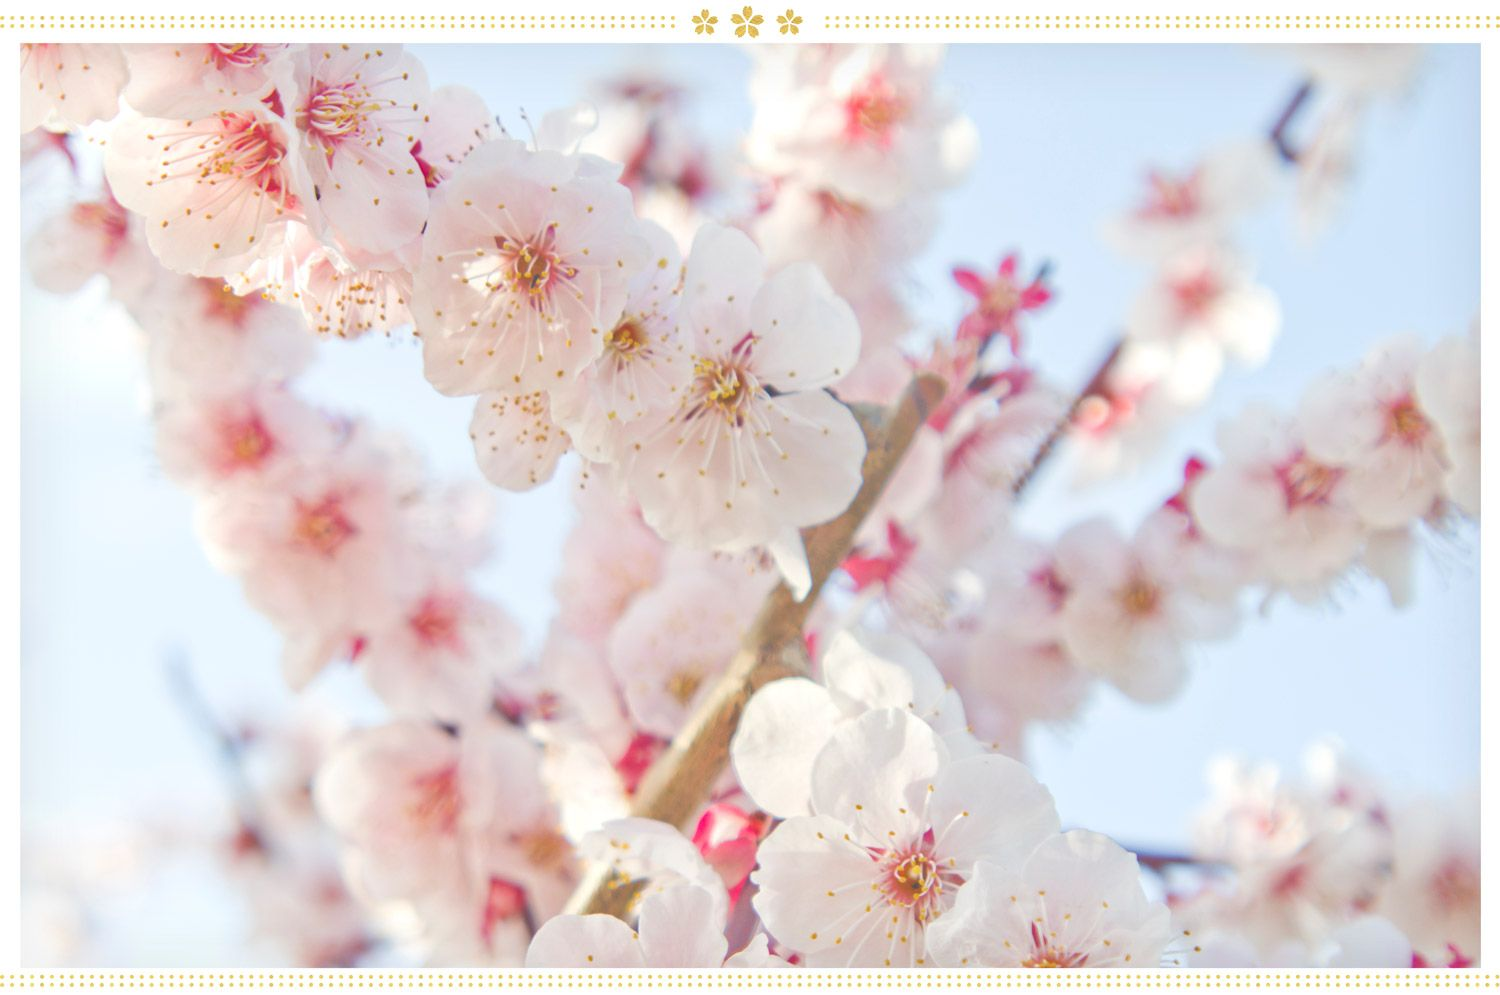 15 Japanese Flower Meanings And Where To Find Them Proflowers Blog In 2020 Japanese Flowers Japanese Flower Names Flower Meanings